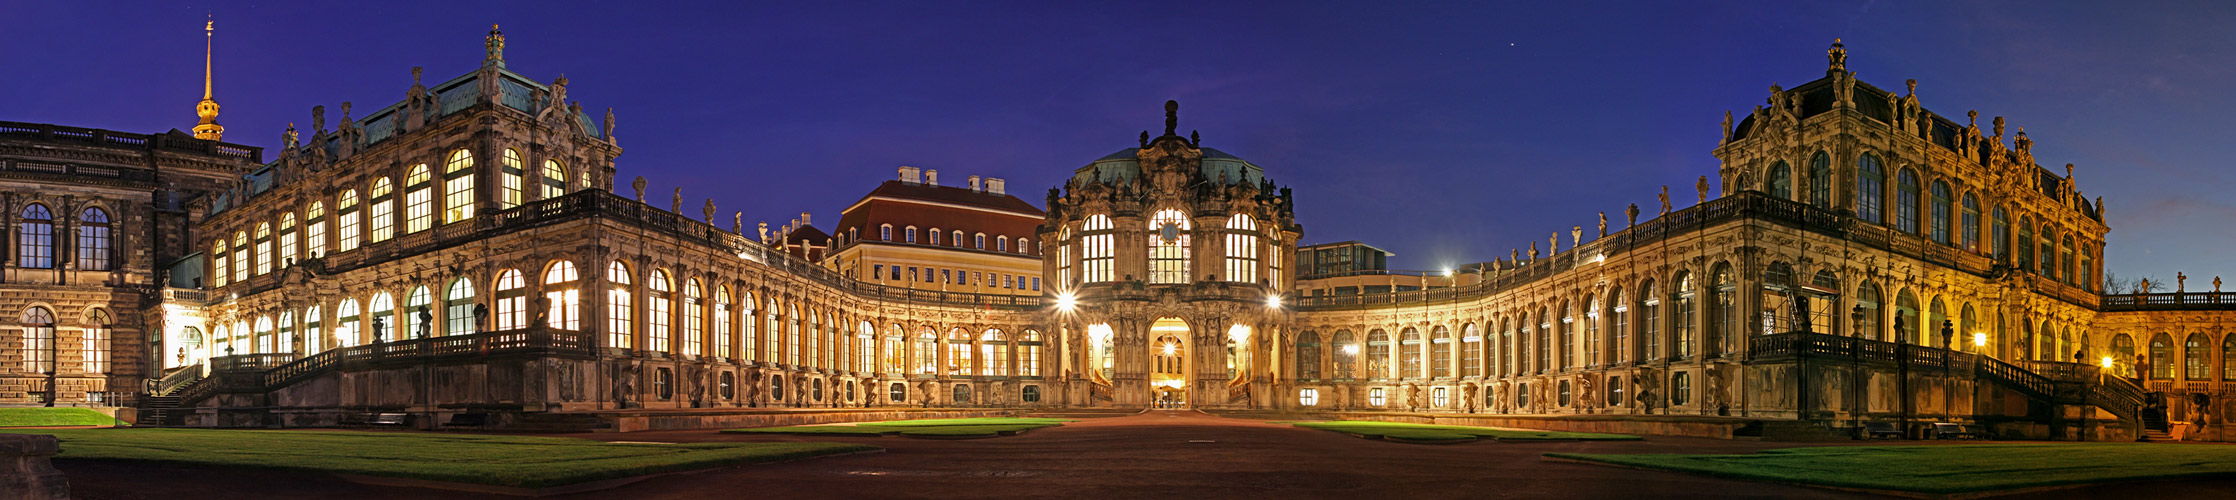 Zwinger- club